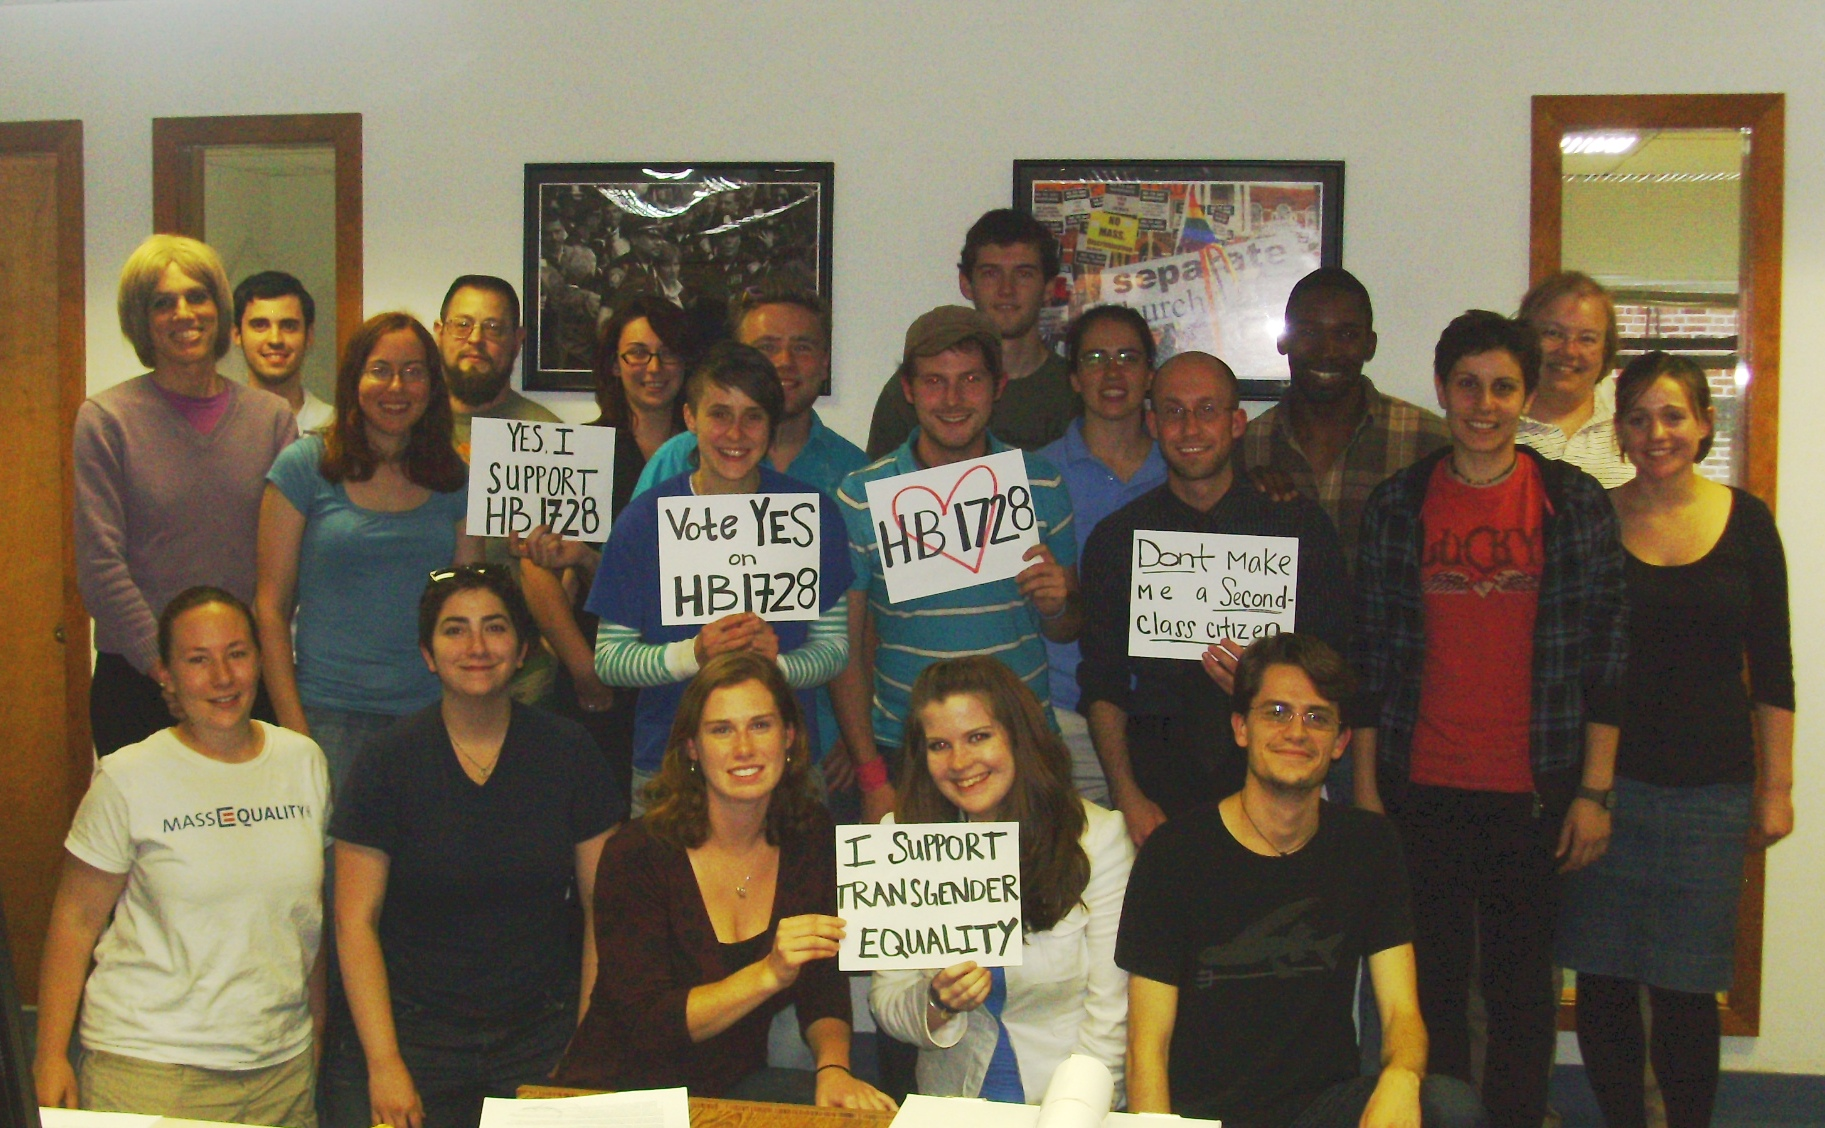 Large group of MassEquality staff and volunteers pose with signs supporting HB1728.